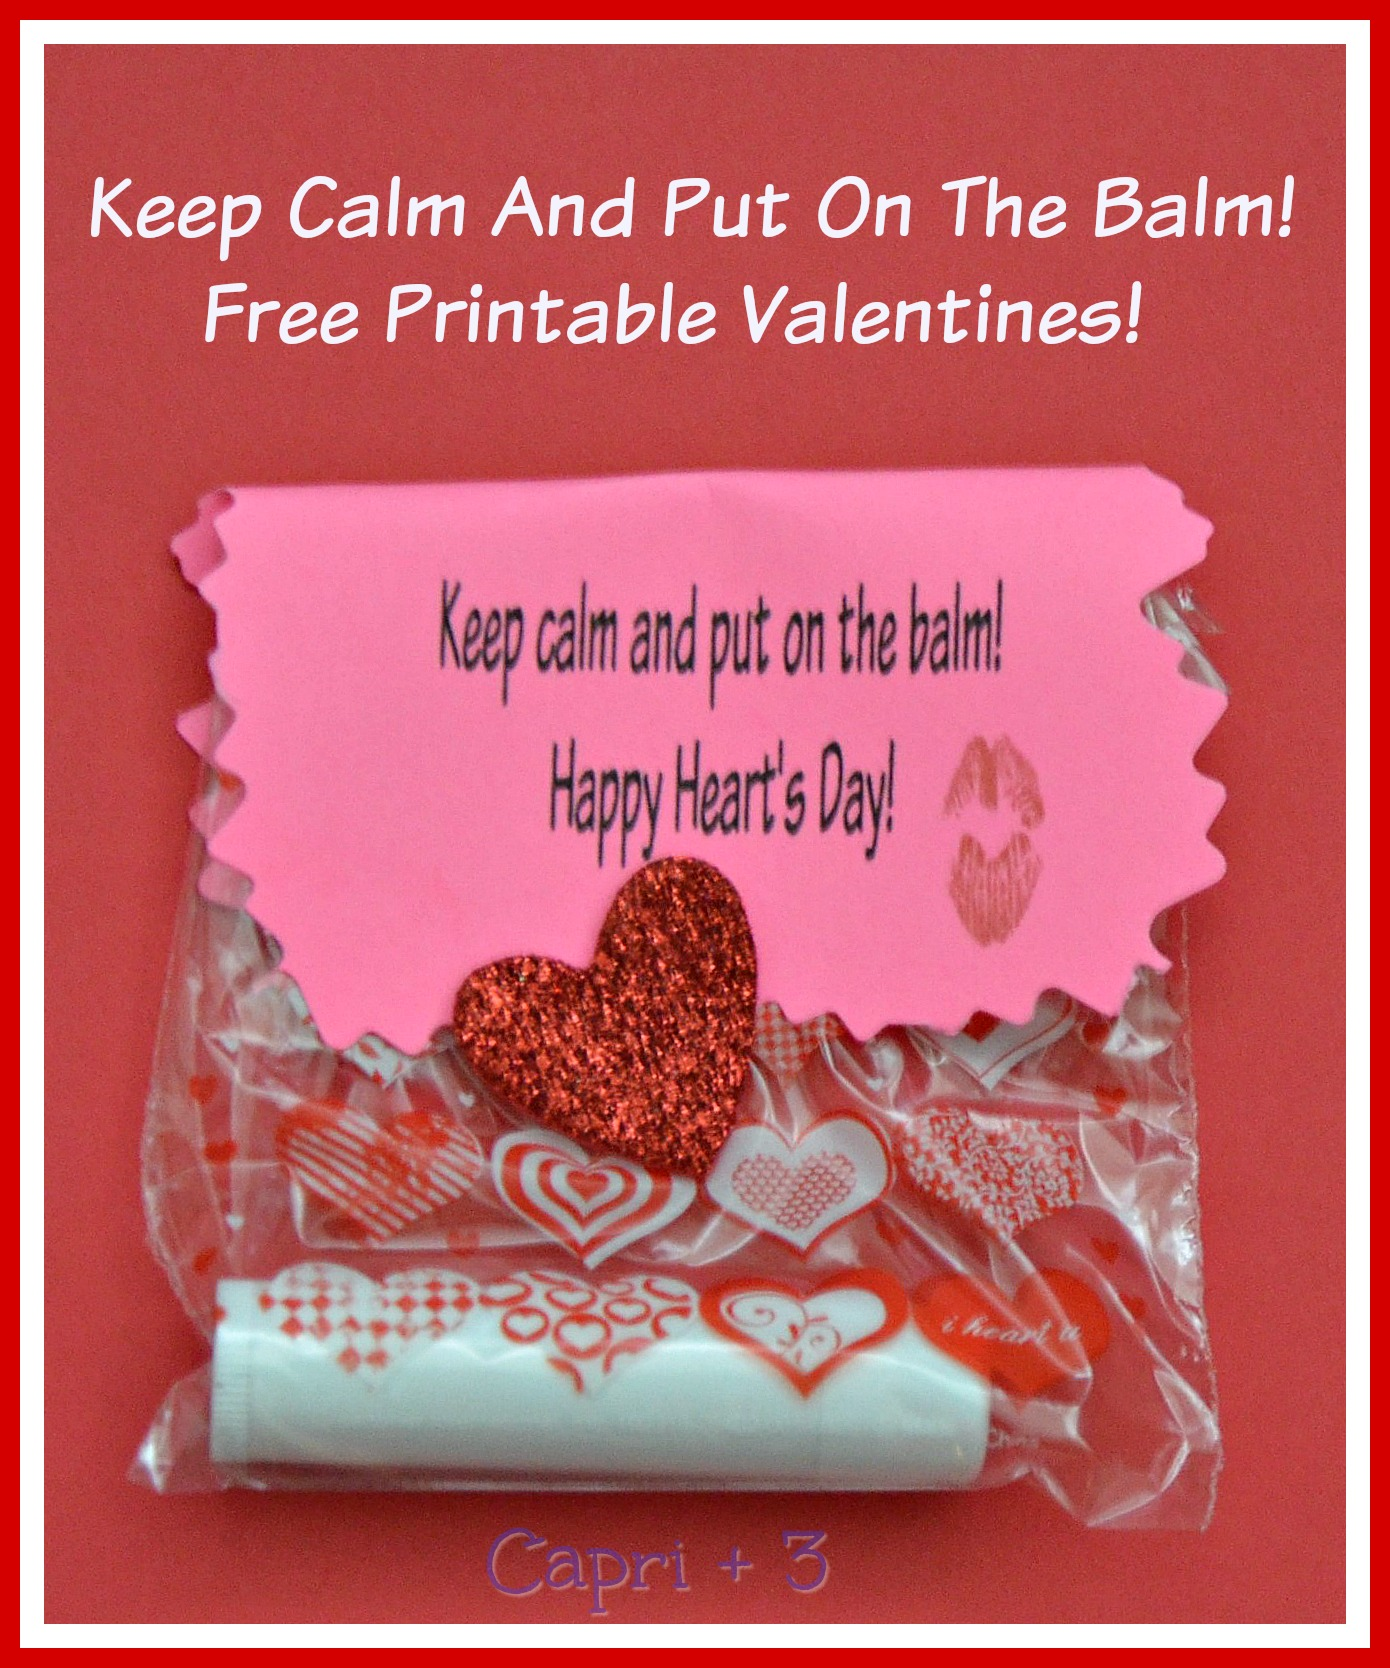 photograph relating to You're the Balm Free Printable referred to as Continue to keep tranquil and place upon the balm Cost-free Printable Valentine